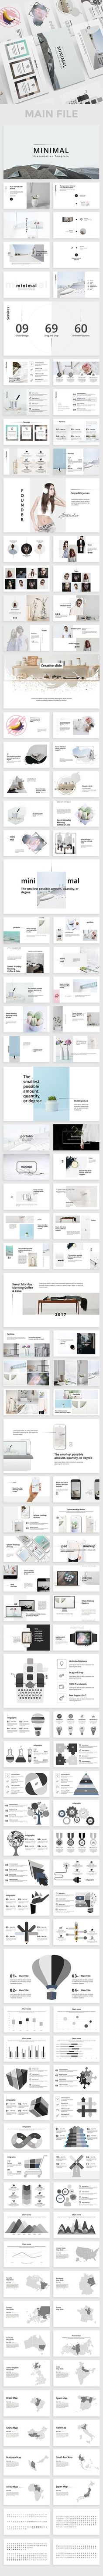 Mieo Minimal Powerpoint Template — Powerpoint PPT #keynote #color • Available here ➝ https://graphicriver.net/item/mieo-minimal-powerpoint-template/20612680?ref=pxcr